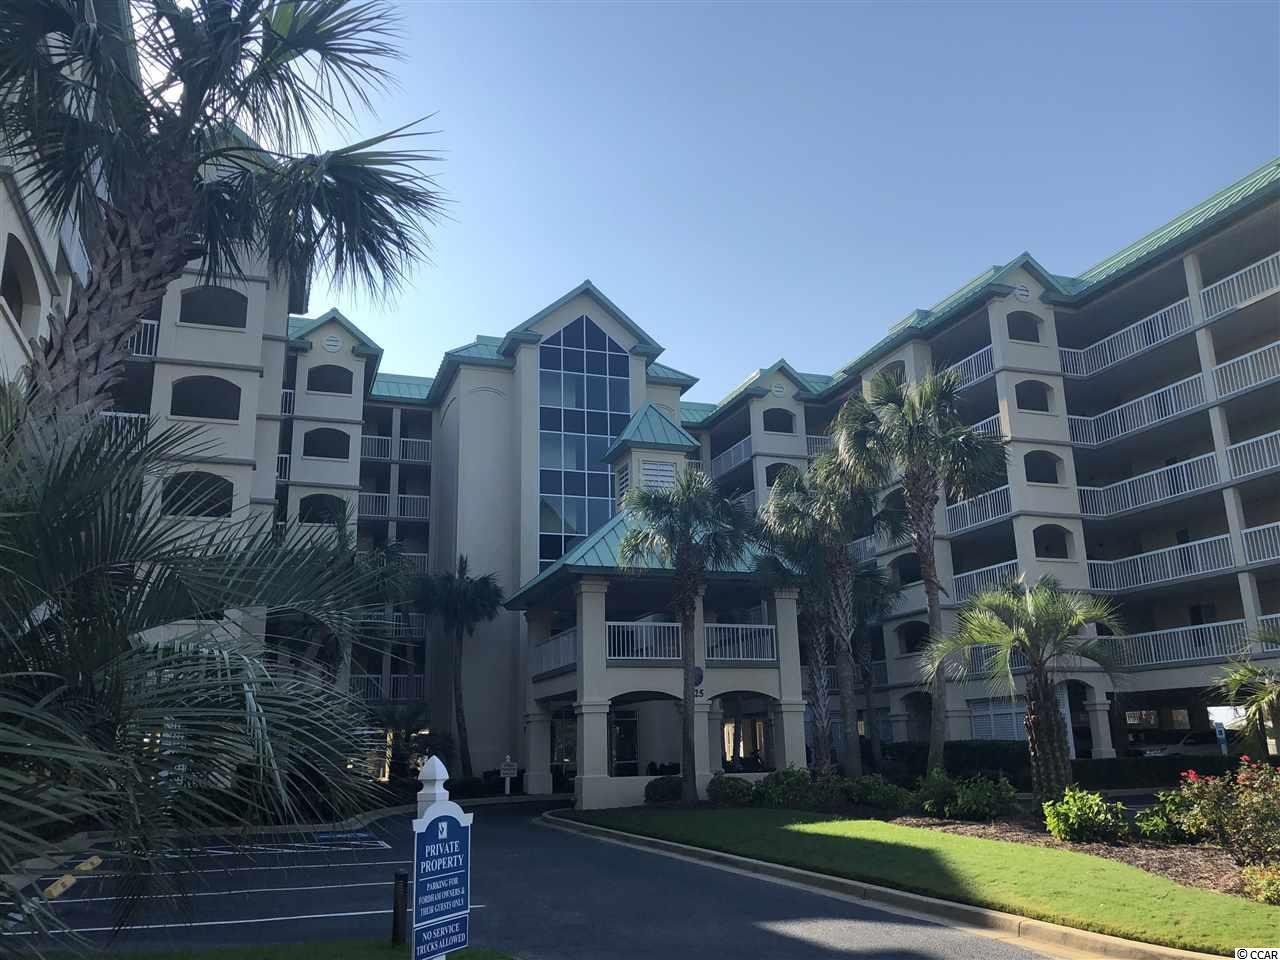 PARTNERSHIP SHARE.    4 WEEKS PER YEAR/ ONE WEEK EACH SEASON.  4/BR -  3 Bath. Ocean Front Mstr. Bdrm w/ Balcony. Mstr Bath w/ Jetted Tub @ Walk-In Shower. FRM. /DR/KIT  w/ Breakfast Bar.Wet Bar w/ Ice Maker In Family Rm. Beautifully Decorated. Elevator.Ocean Front Balcony Overlooking Swimming Pool, Sandy Beach @ The Blue Atlantic. Ocean Front Gated Community w/ Community Ocean Front Club House, Lighted Tennis Courts, Bike @ Walking Paths, Lake Front Fishing Dock & Ocean Front Access.      NON-RENTAL. NO SMOKING. NO PETS.